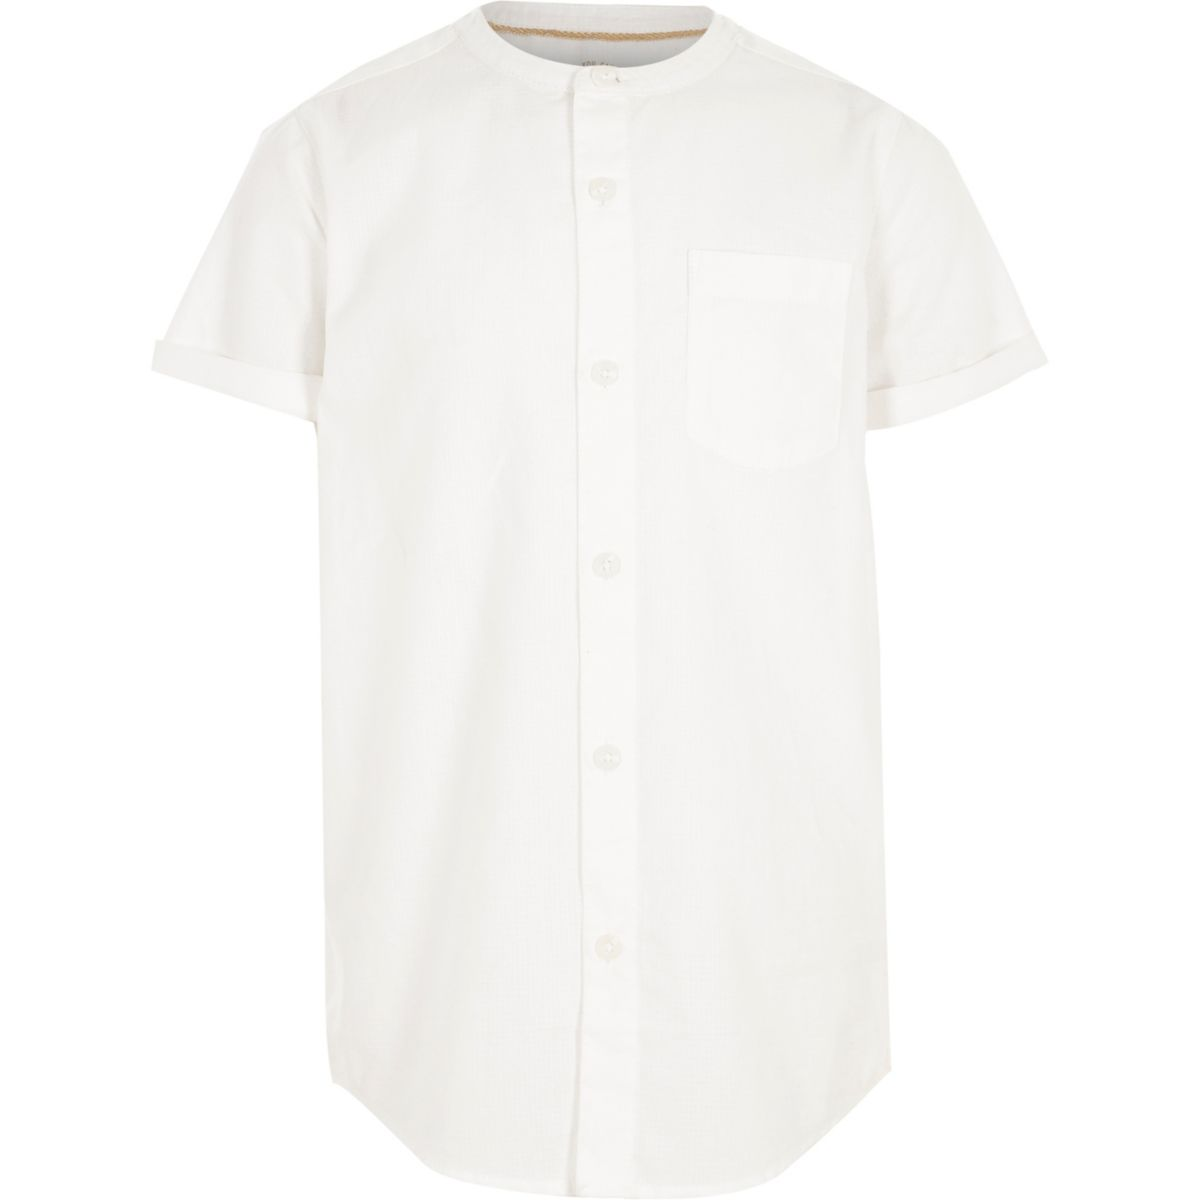 Boys white short sleeve grandad shirt